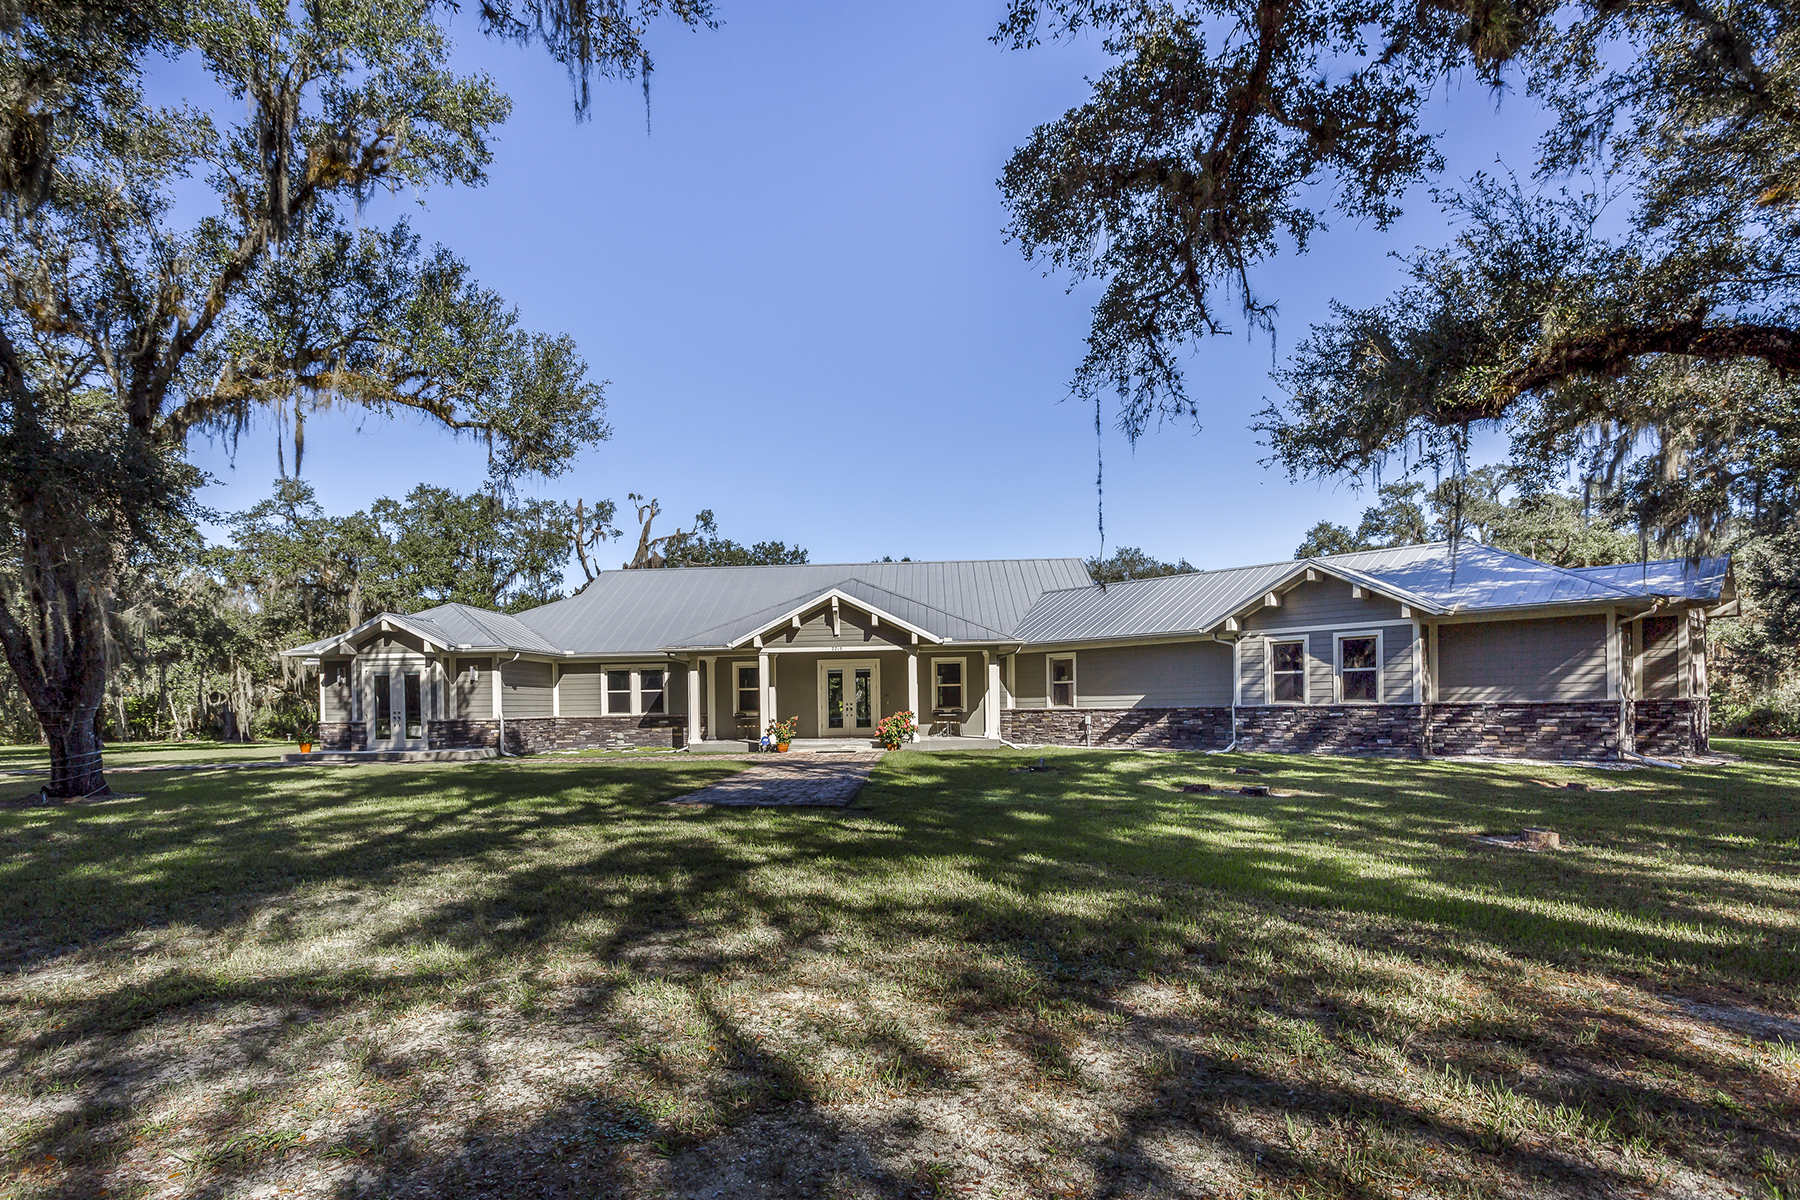 Single Family Homes for Sale at ARCADIA 7713 Sw Vineyard Ter Arcadia, Florida 34269 United States